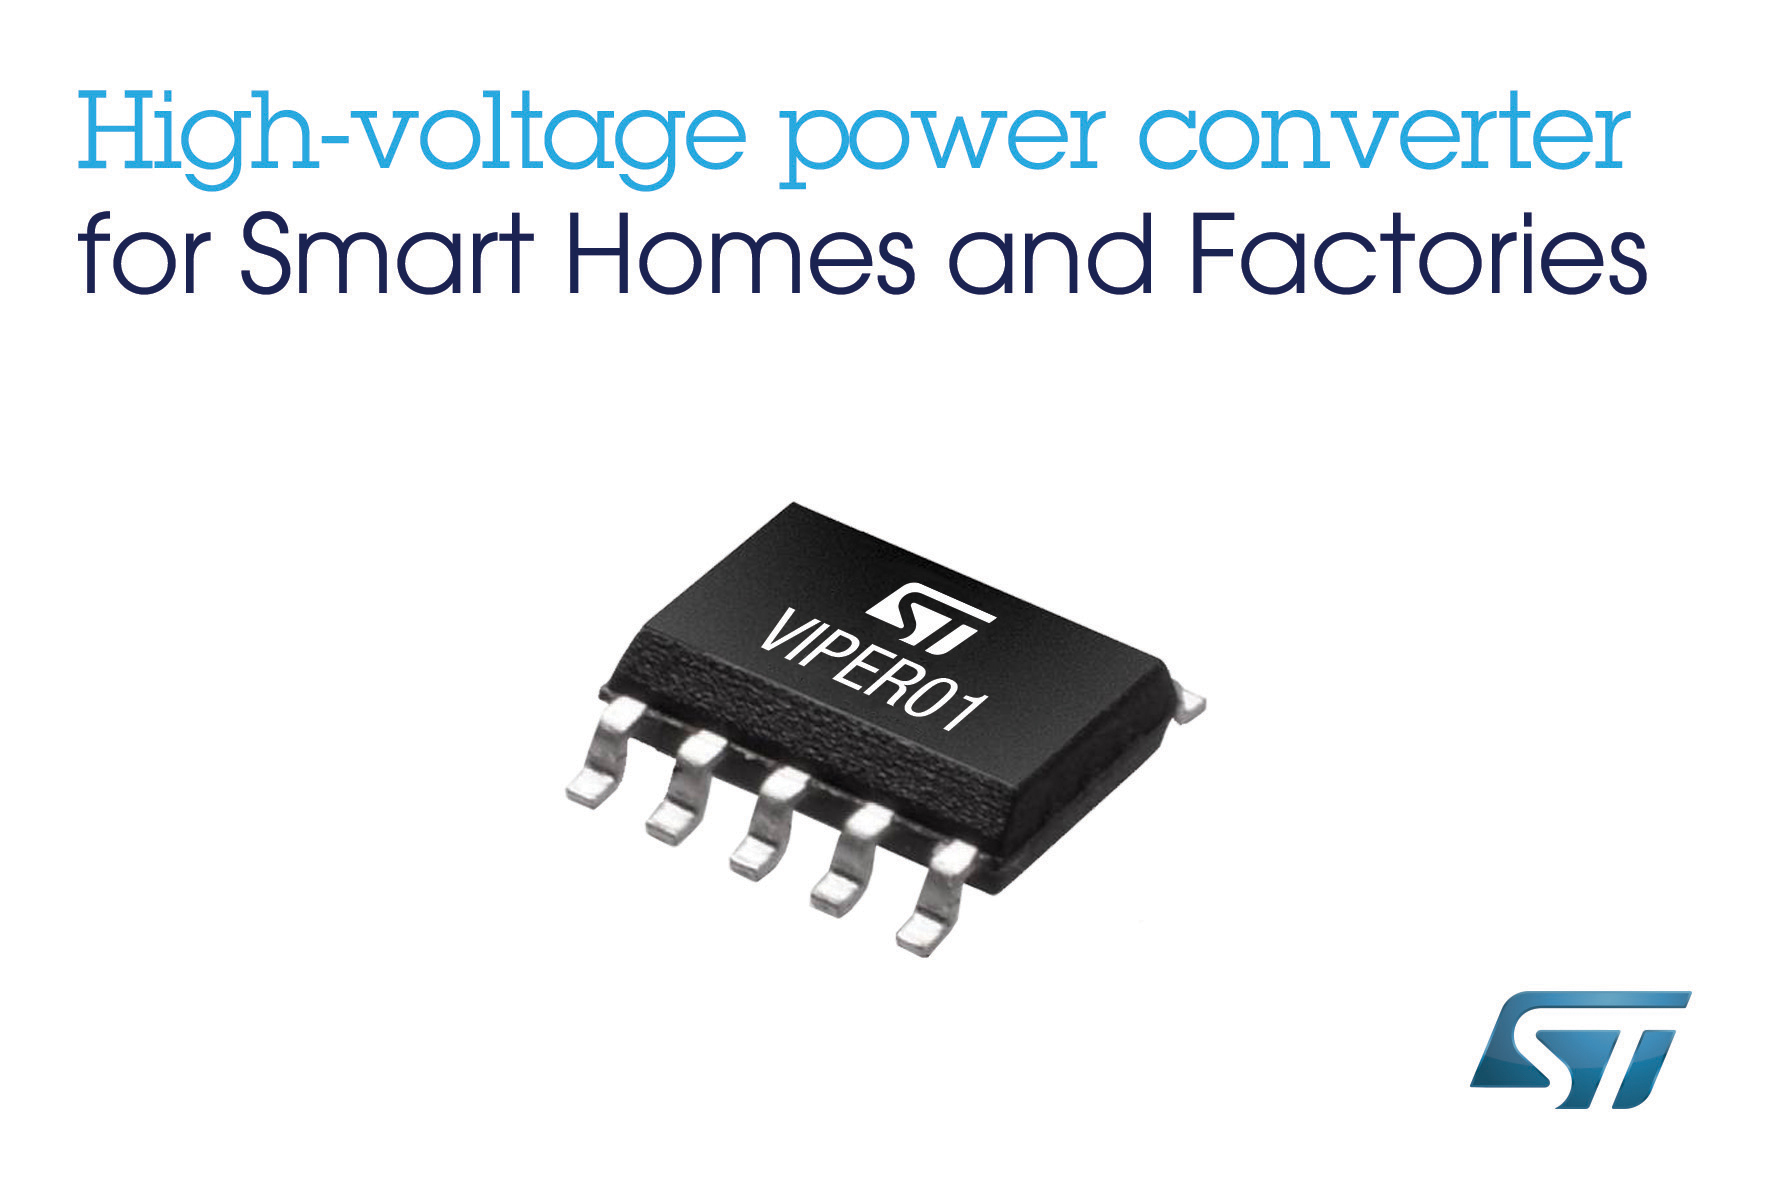 High Voltage Converter From Stmicroelectronics Enables Ultra Low Power Supply Tutorial Smps Consumption Supplies In Smart Home And Industrial Applications